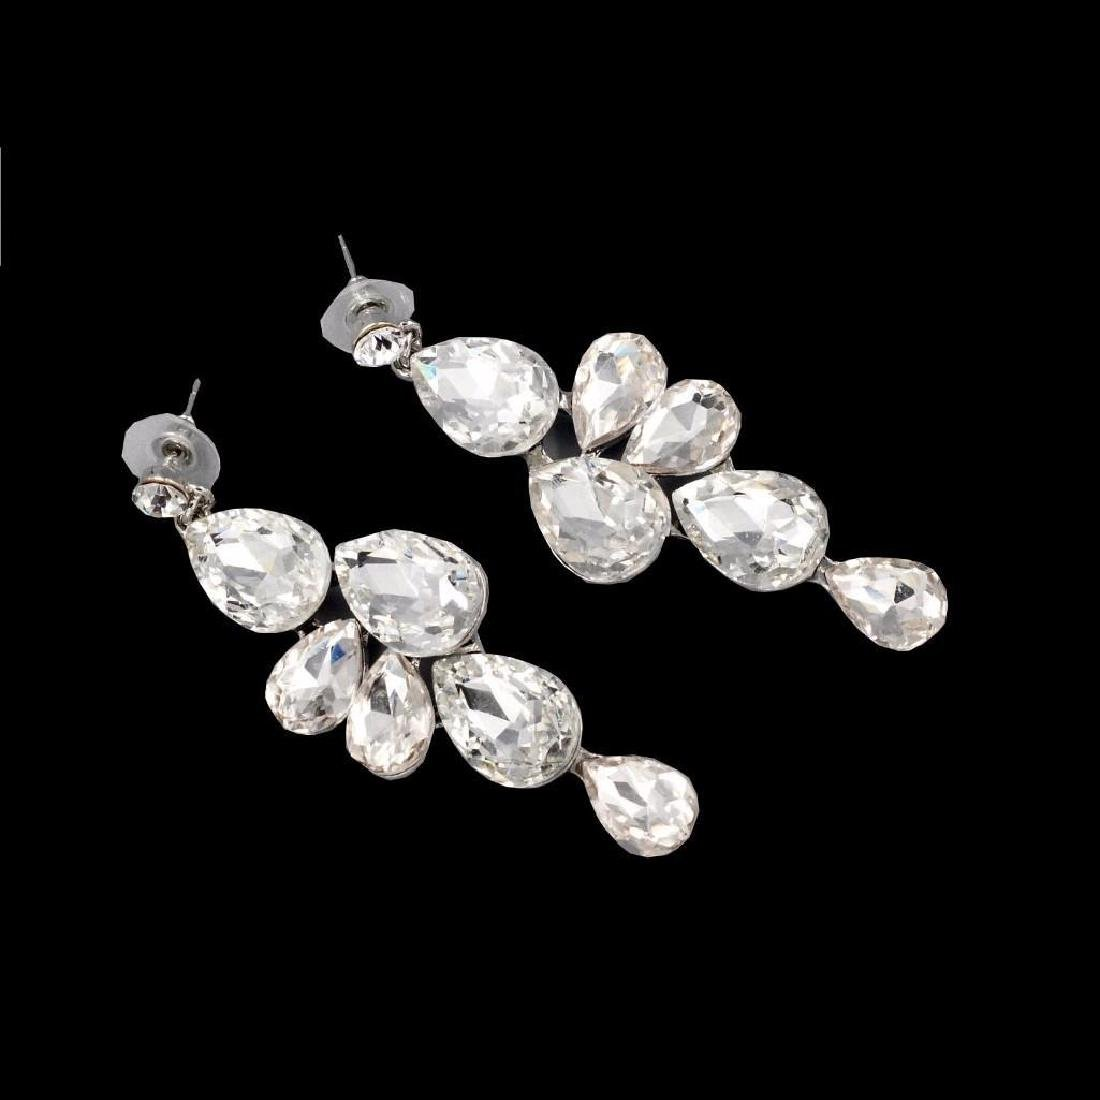 Gorgeous Rhodium Plated Clear Crystal Necklace Earrings - 2